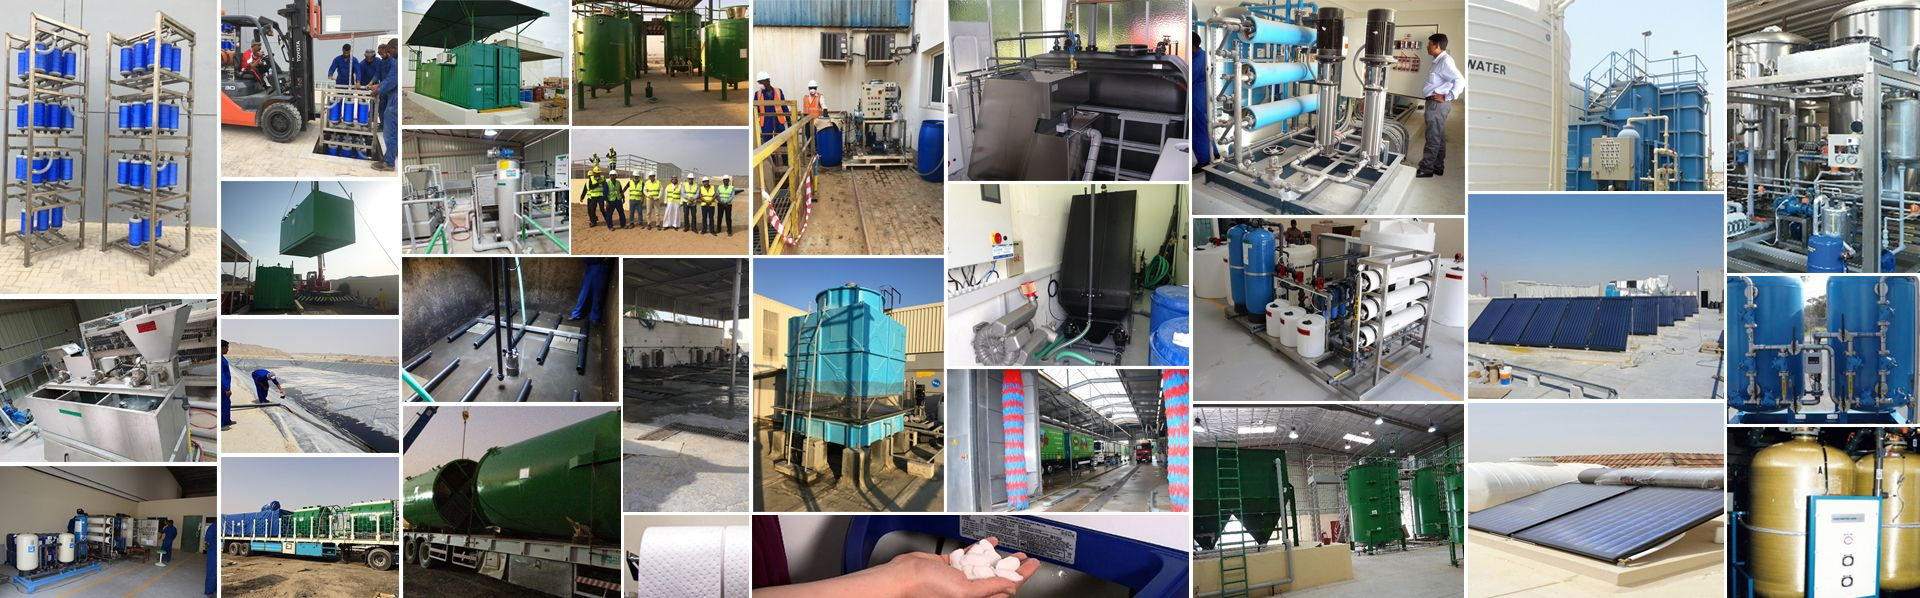 Al Khabeer Water Treatment Llc Is A Dependable Supplier In Dubai Of Water And Waste Water Treatment S Water Treatment System Dubai Chemical Suppliers